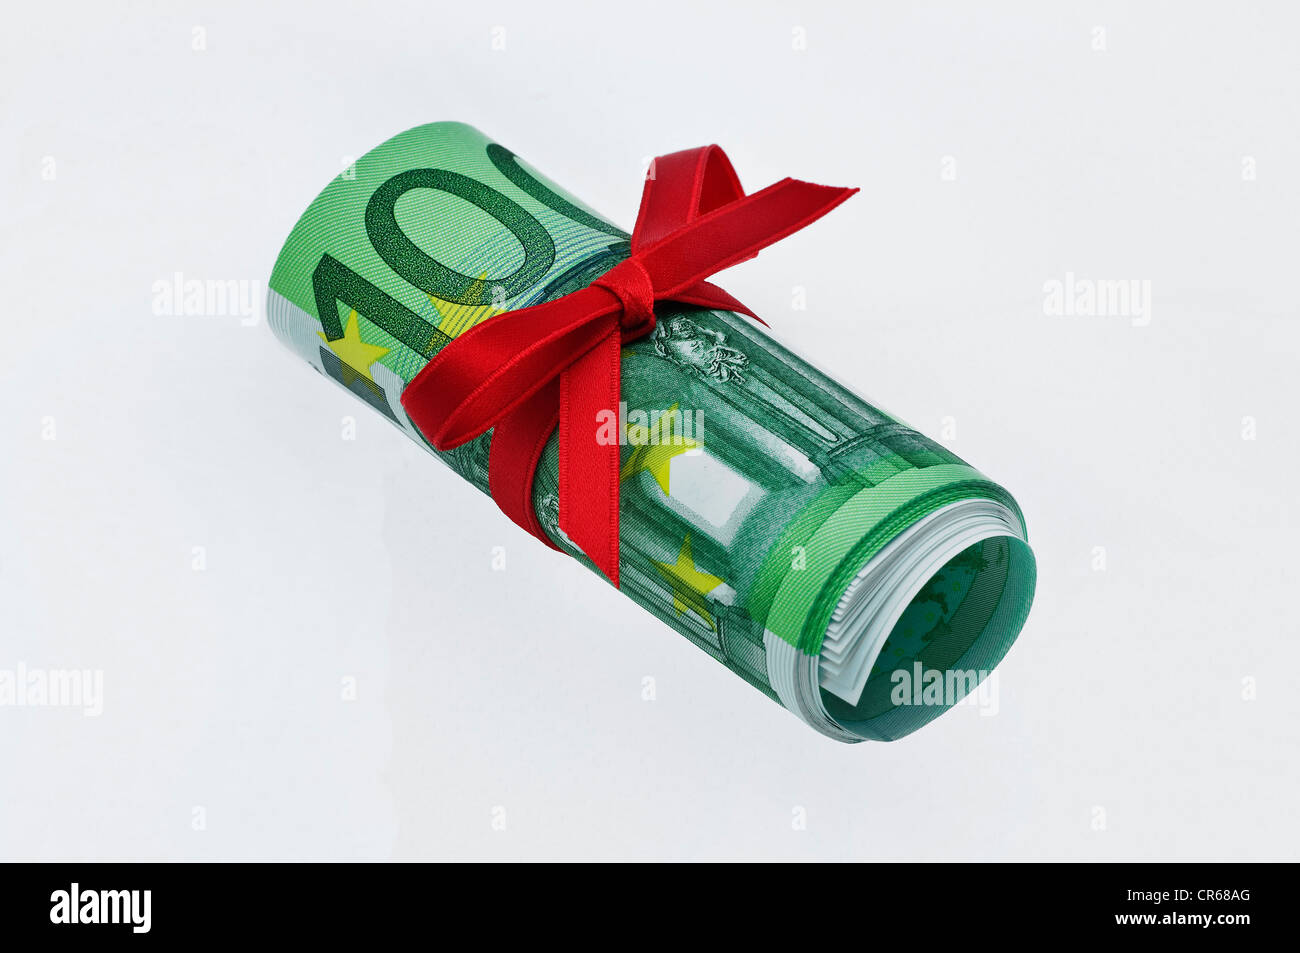 Rolled up 100-euro banknotes with a red ribbon, gift of money - Stock Image